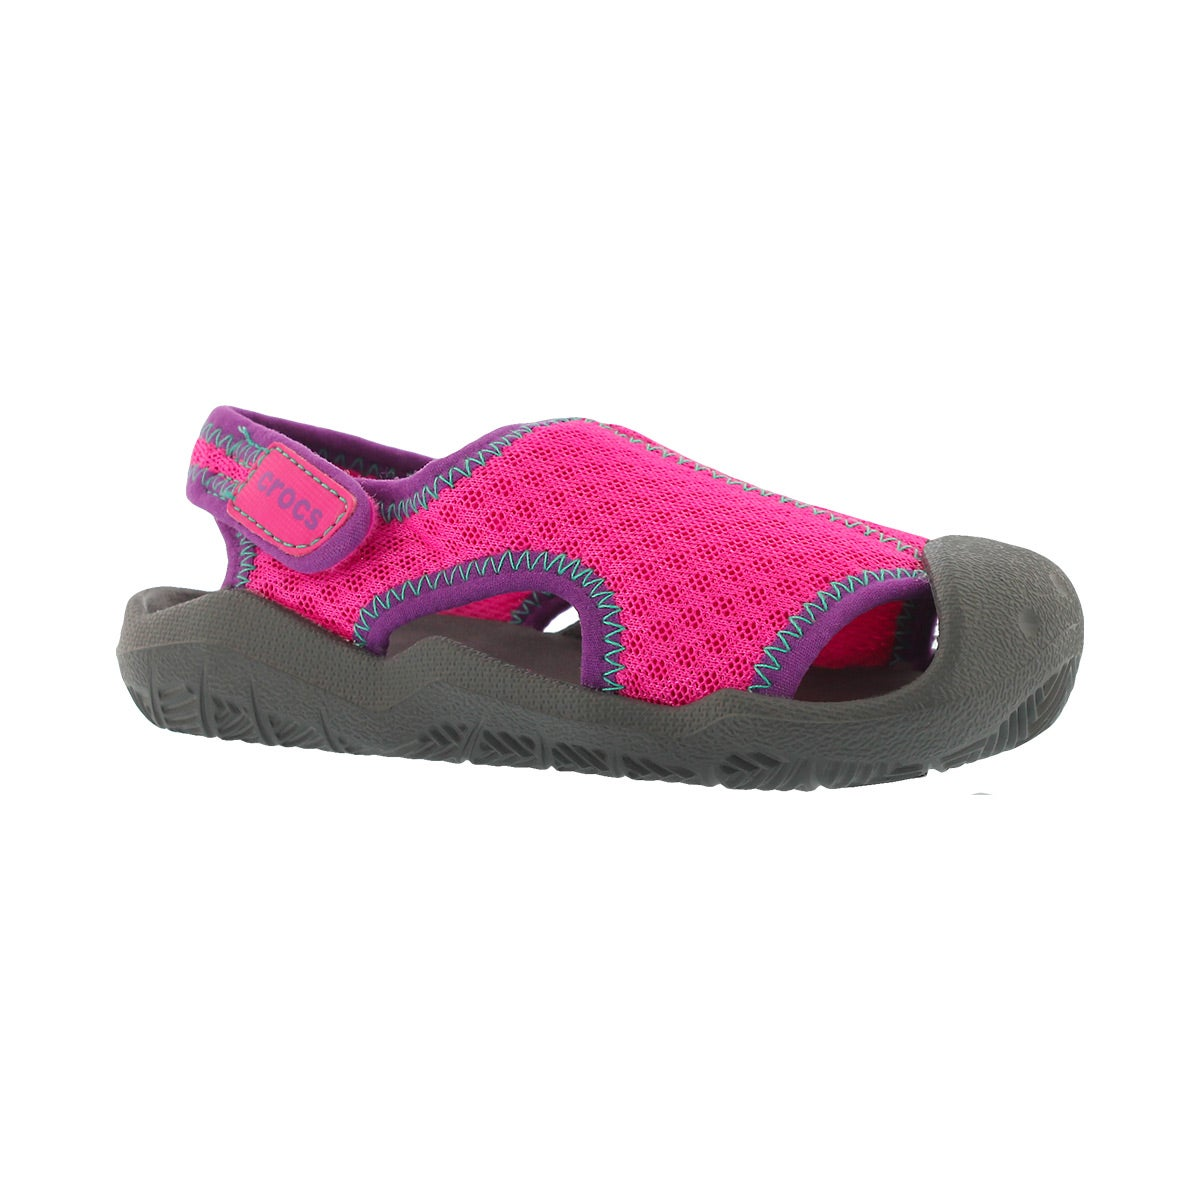 Grls Swiftwater mgnta/gry casual sandal